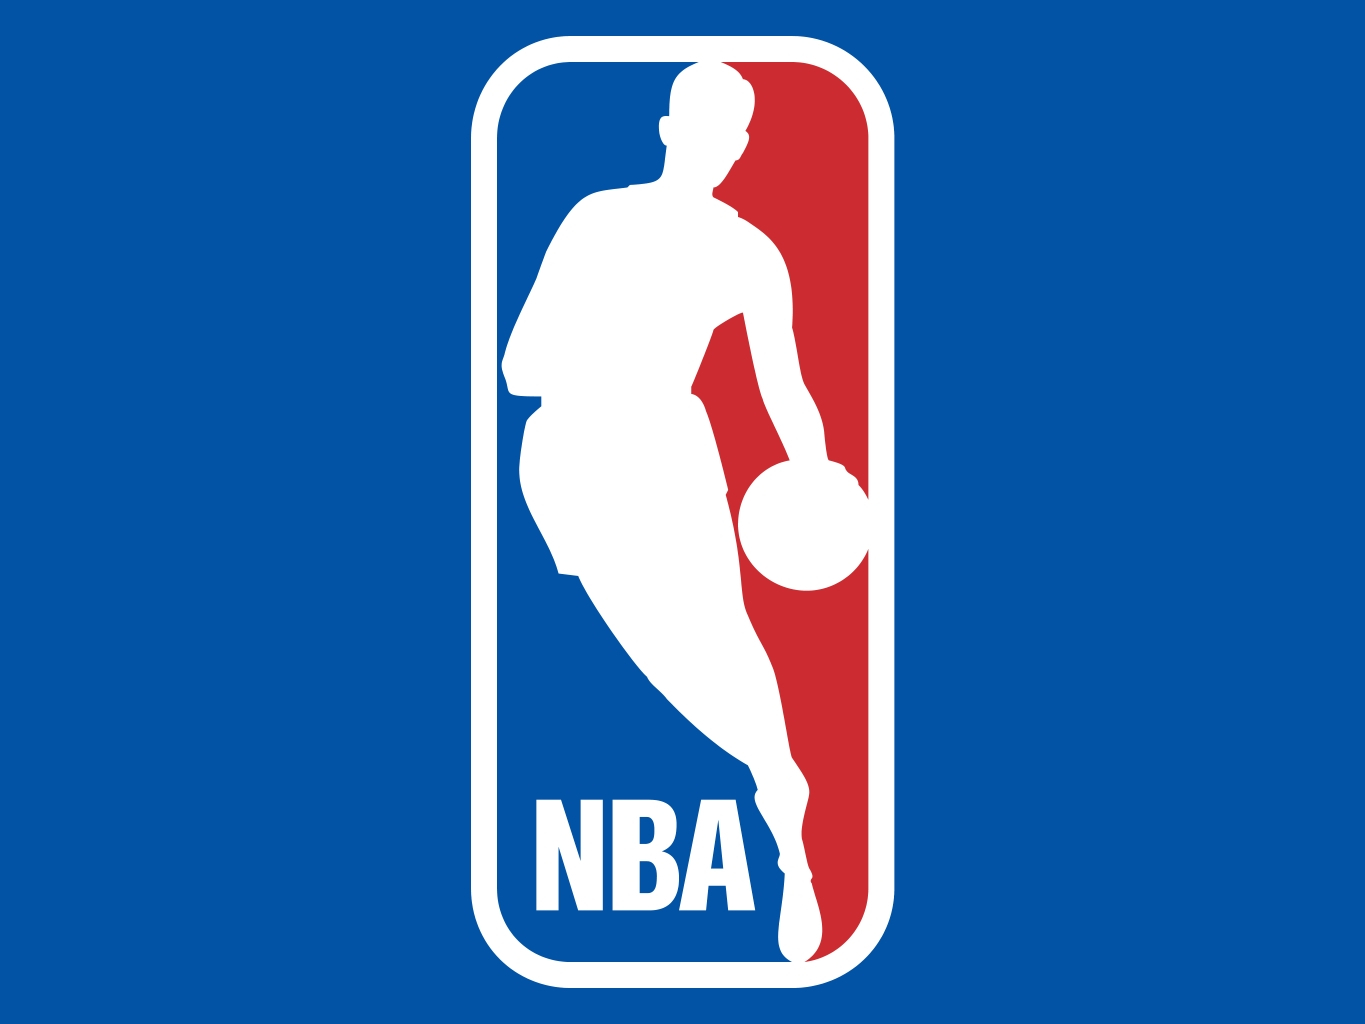 NBA: Indiana Pacers - Cleveland Cavaliers